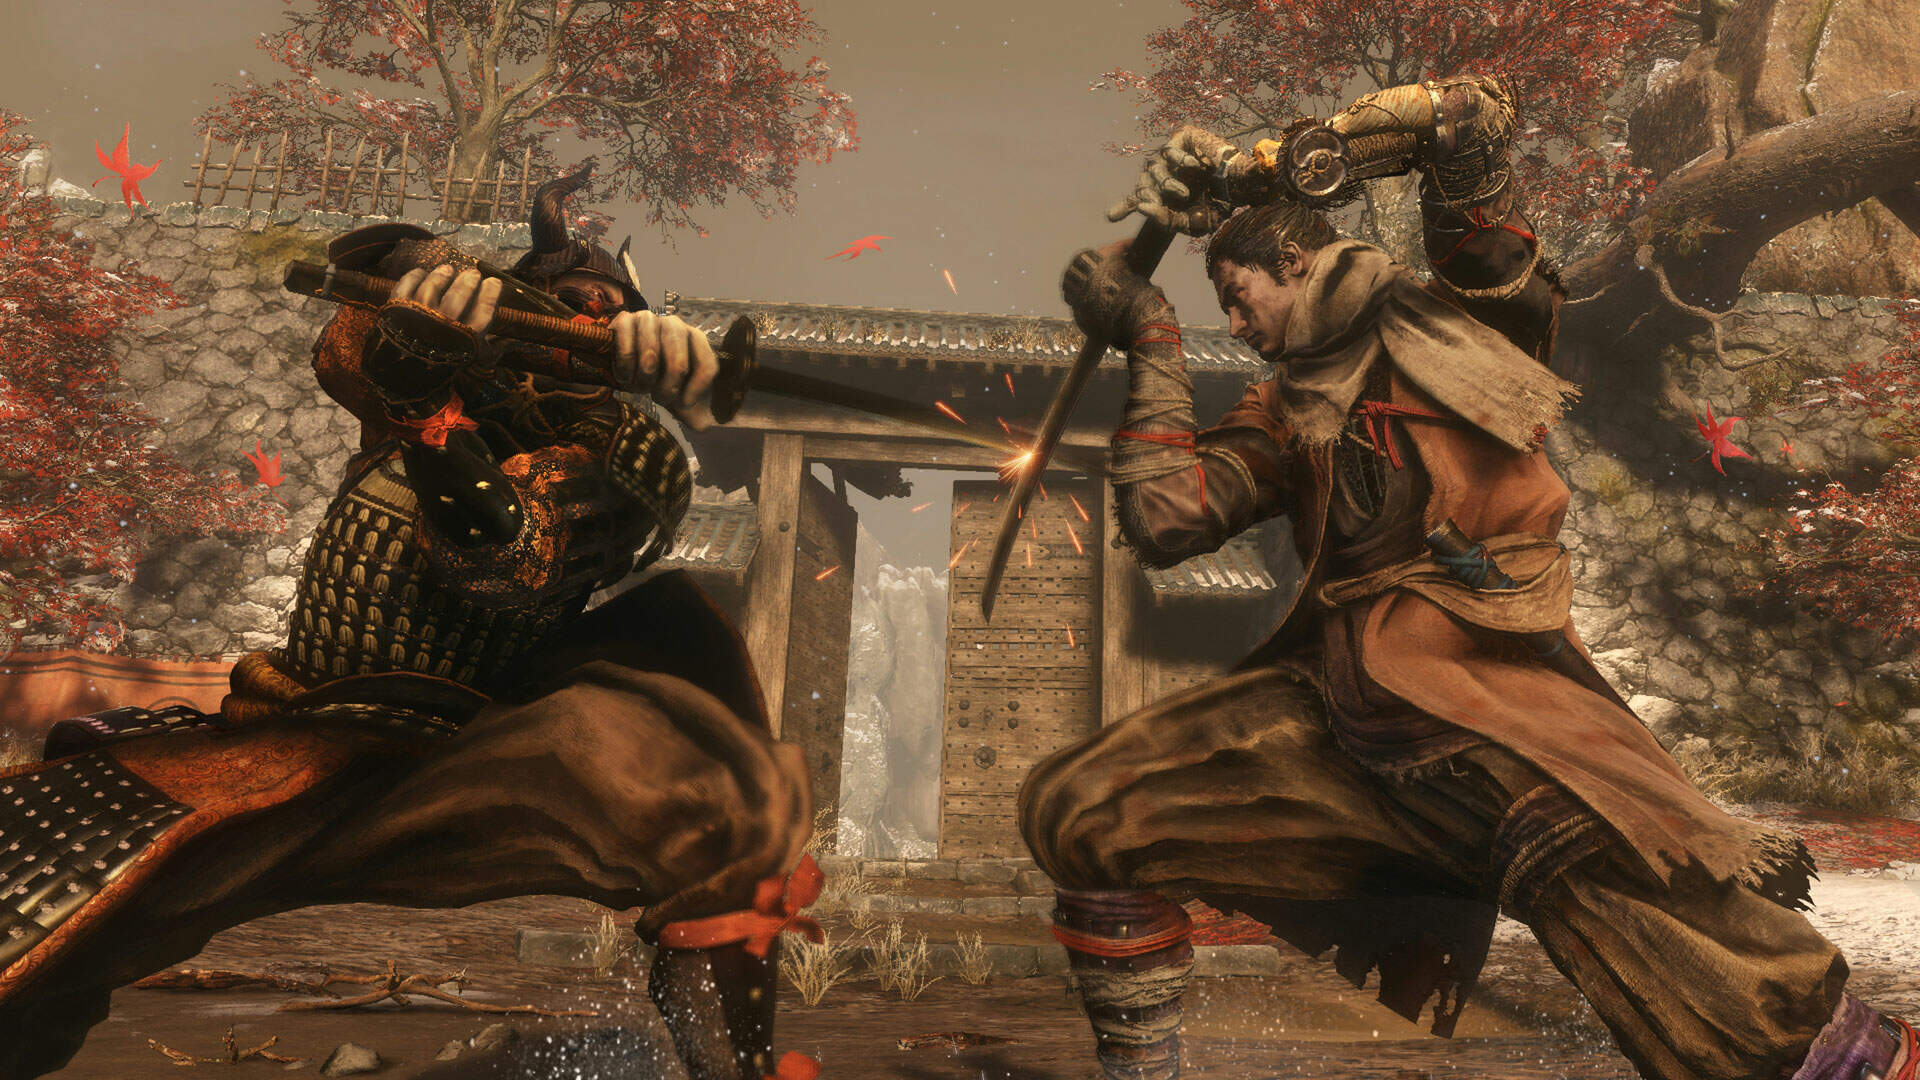 How to Get Every Ending in Sekiro: Shadows Die Twice